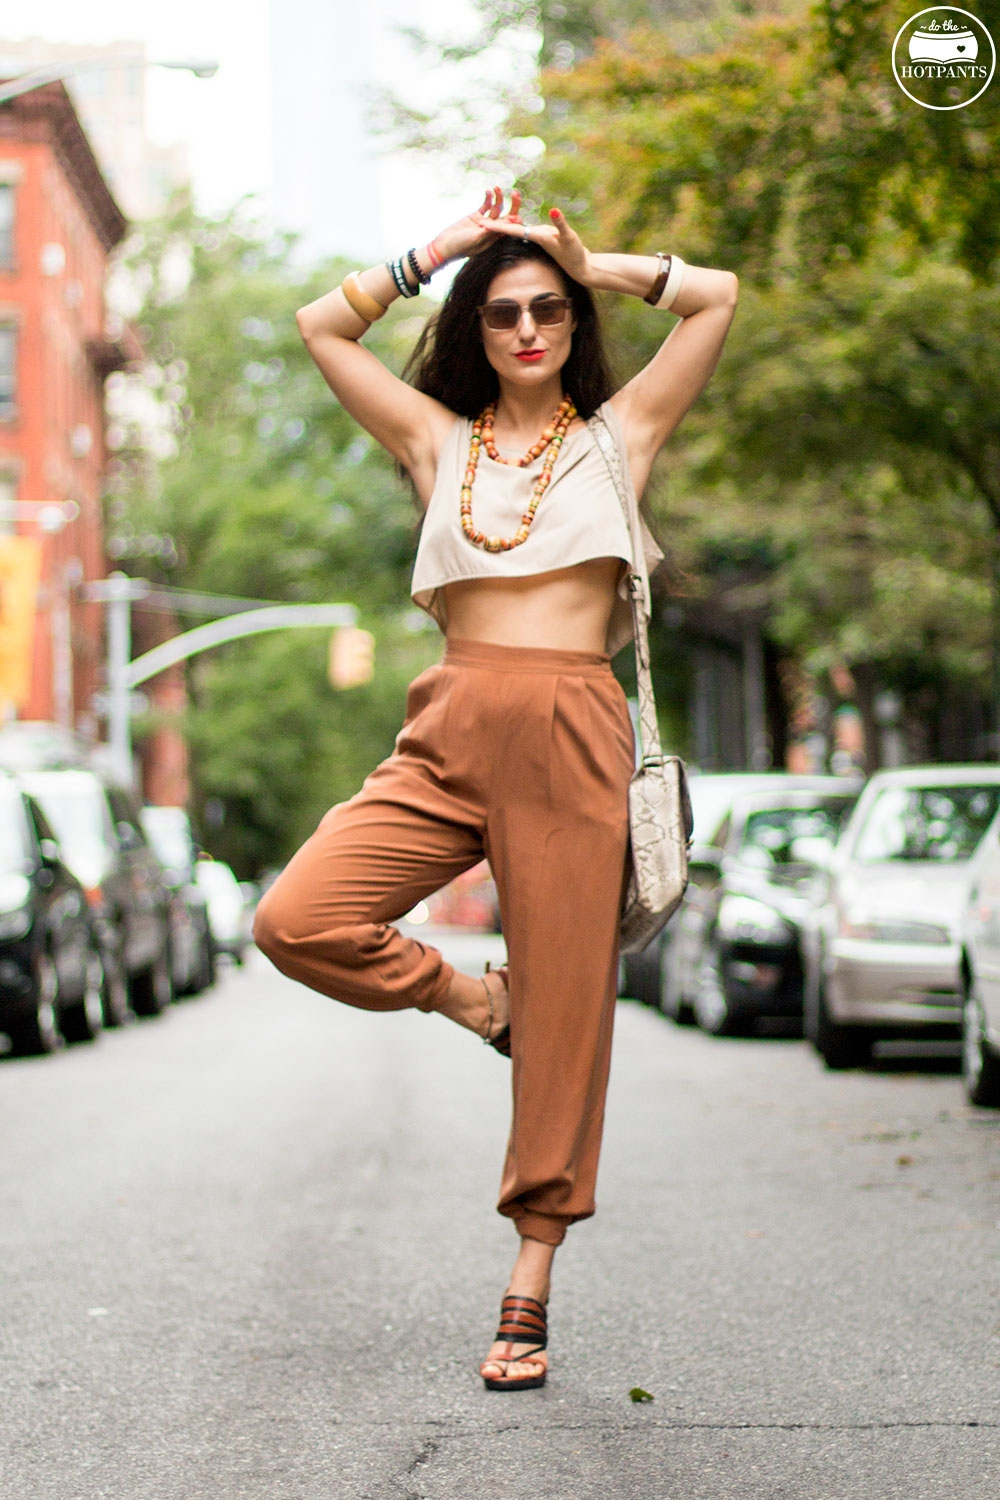 Do The Hotpants Dana Suchow Dharma Sunglasses Summer New York City Outfit Streetstyle Neutral Nude Fashion IMG_9813